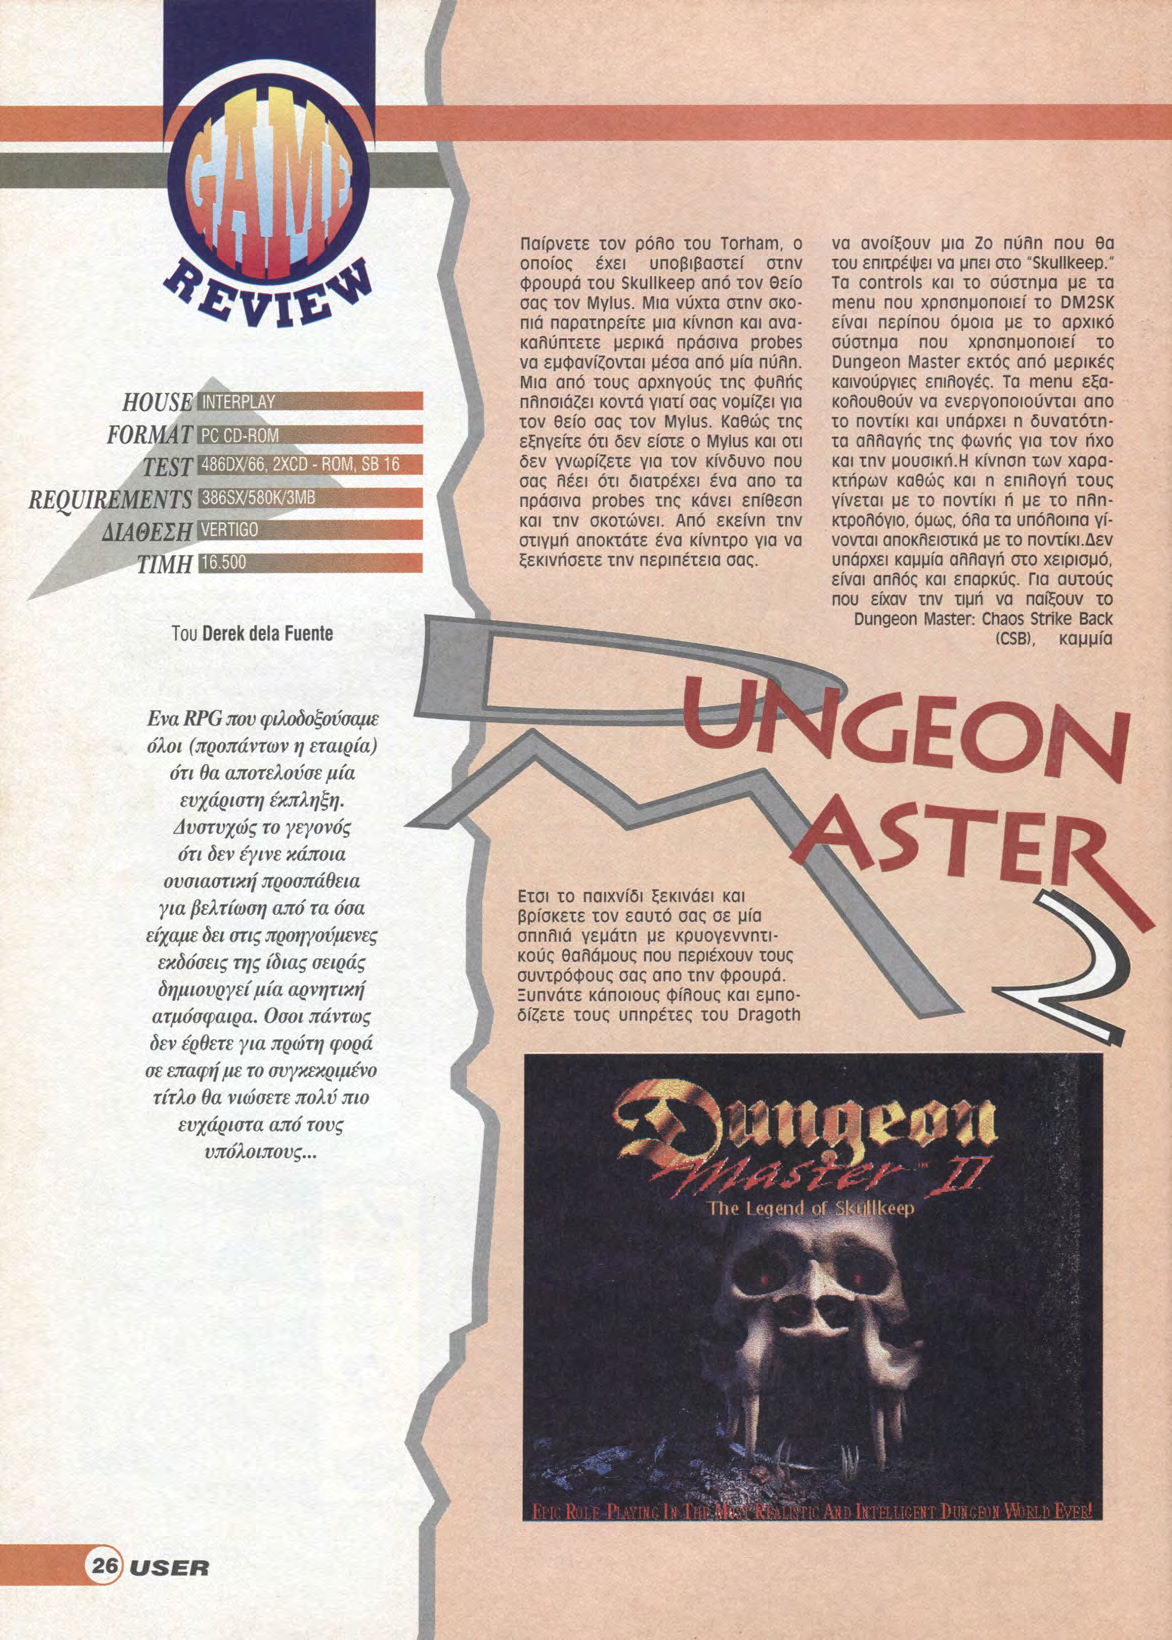 Dungeon Master II for PC Review published in Greek magazine 'User', Issue #66 February 1996, Page 26